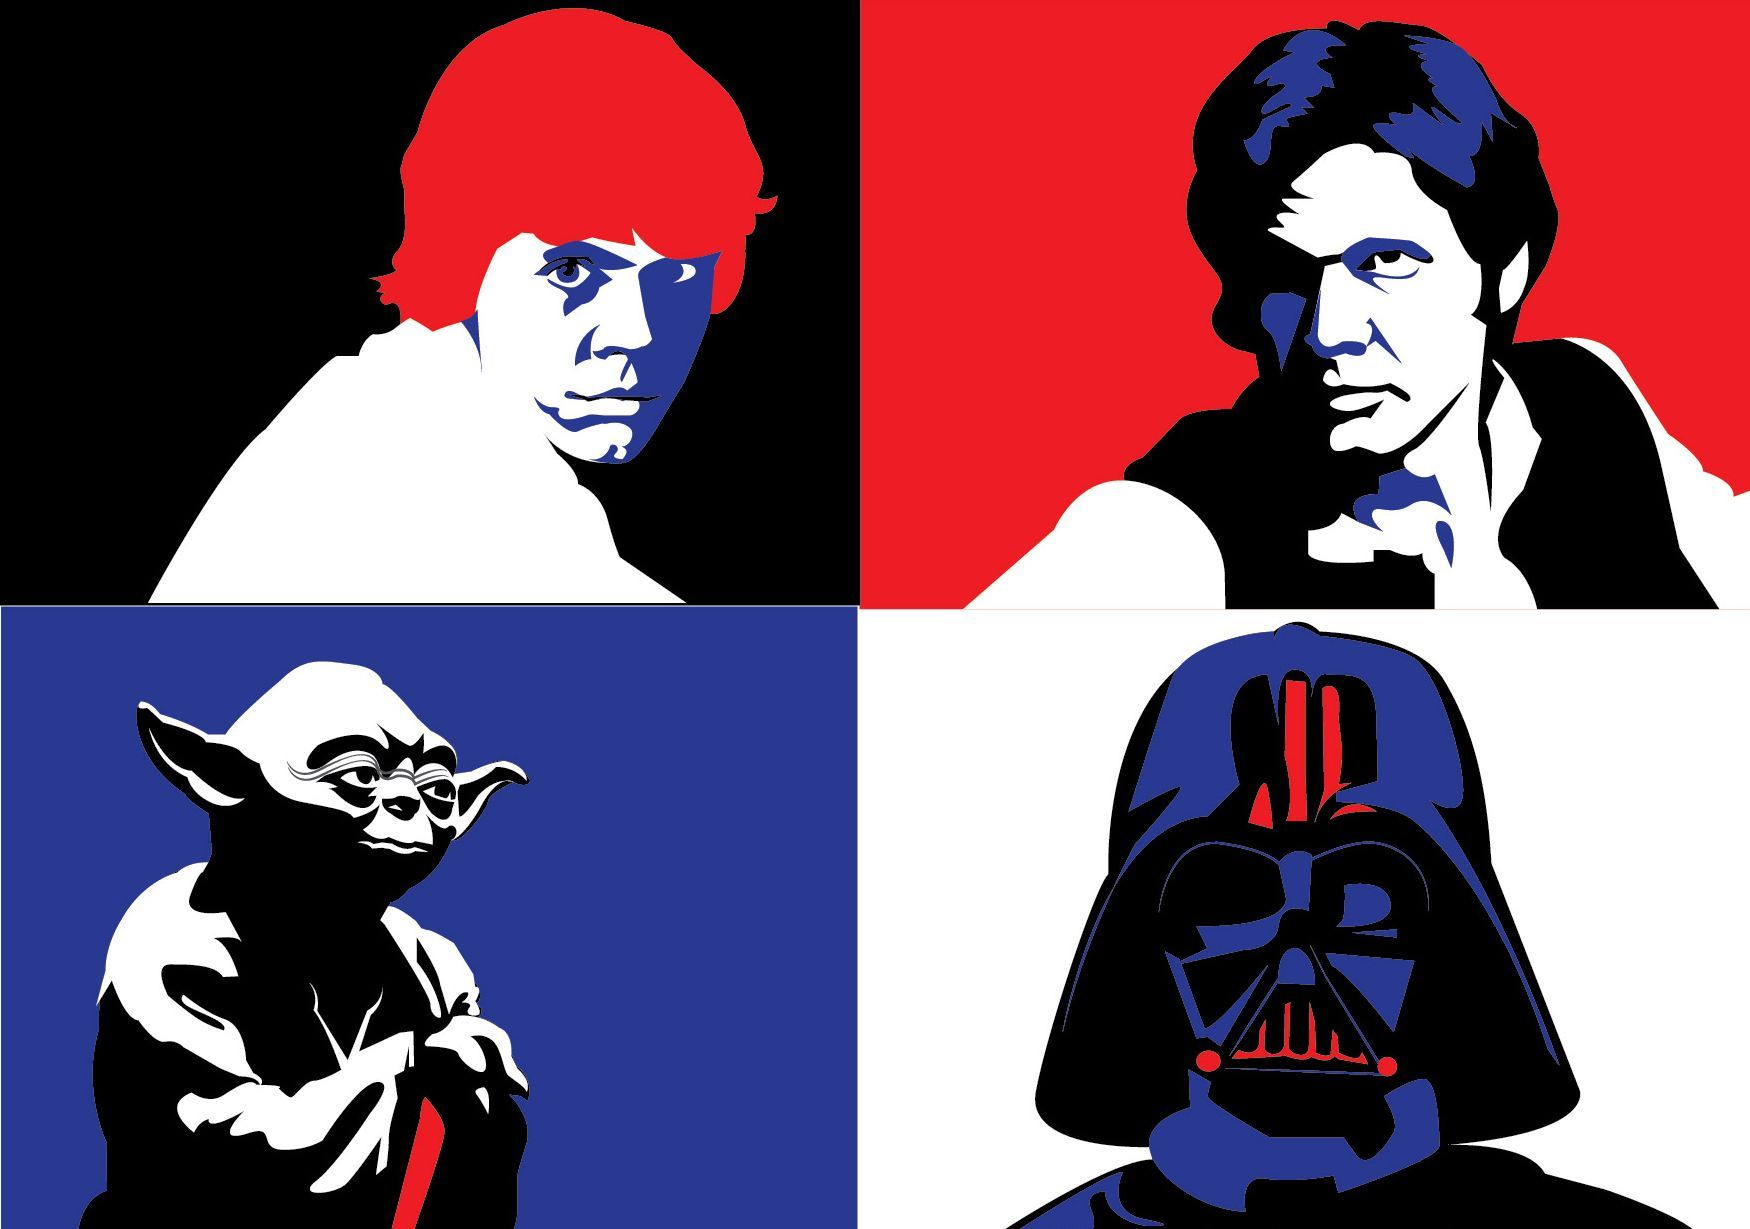 1750x1229 Star Wars Vectors, Starwars, Darth Vader, Skywalker, Han Solo